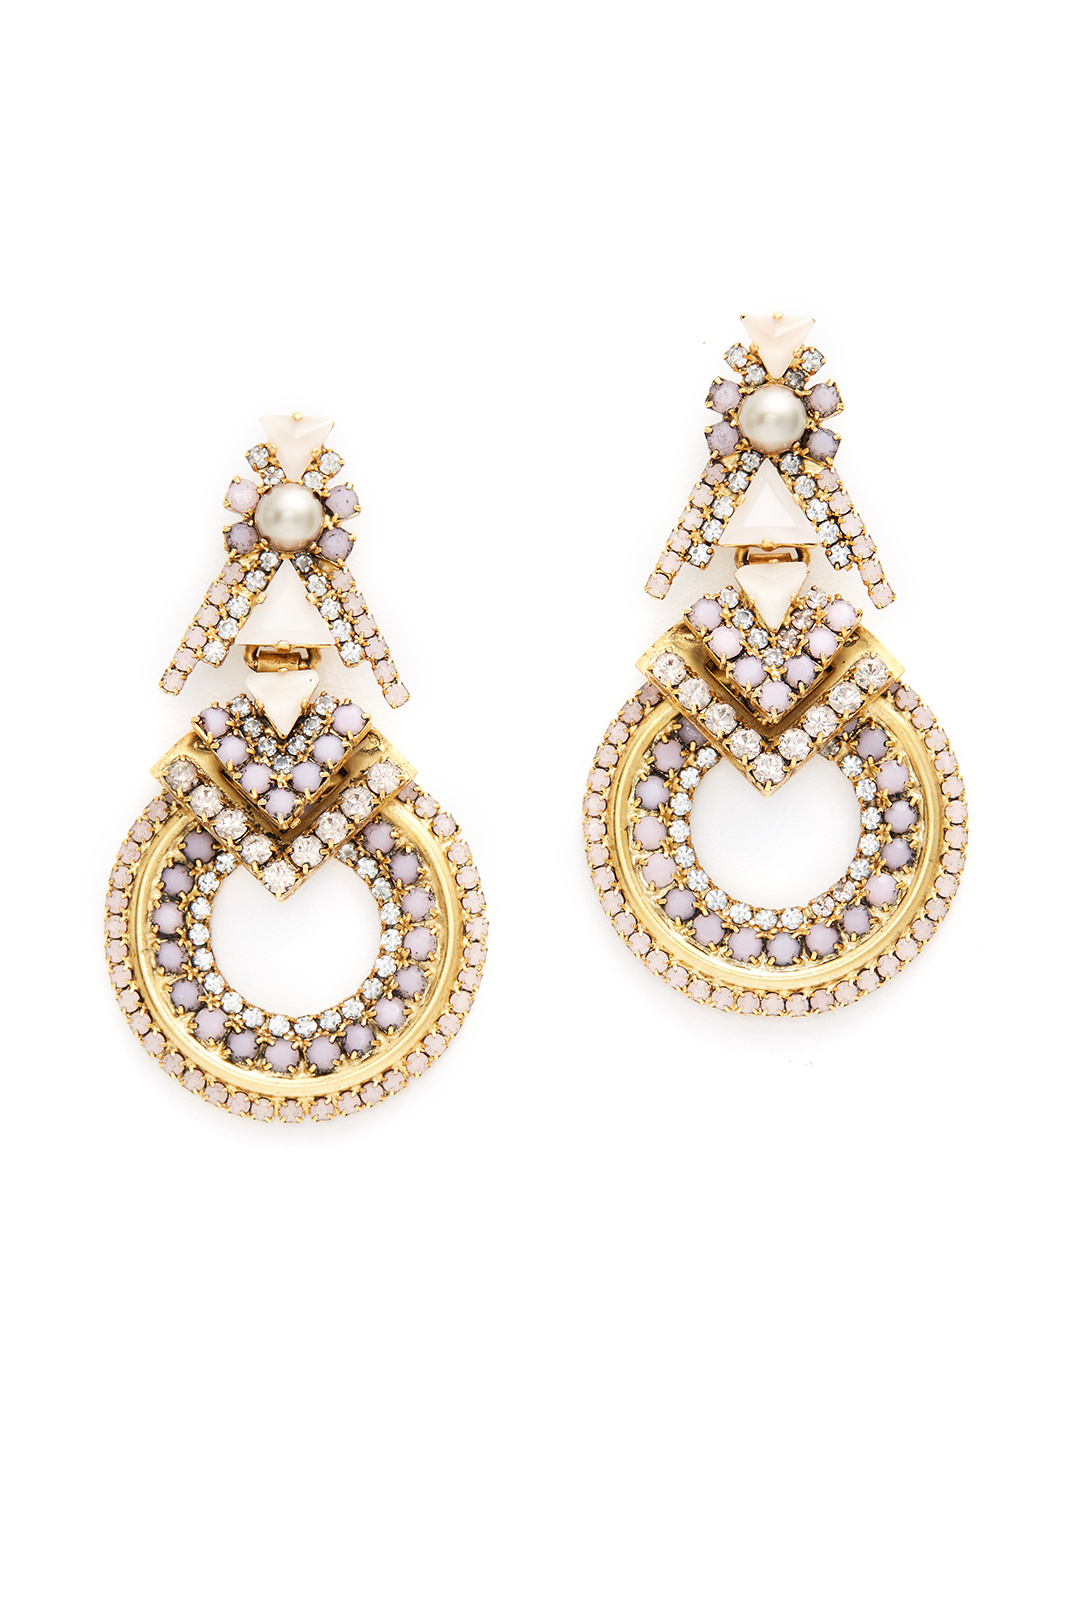 Elizabeth Cole Blush Pave Stone Hoop Earrings - These are quite a statement. But I loved them when I rented them.